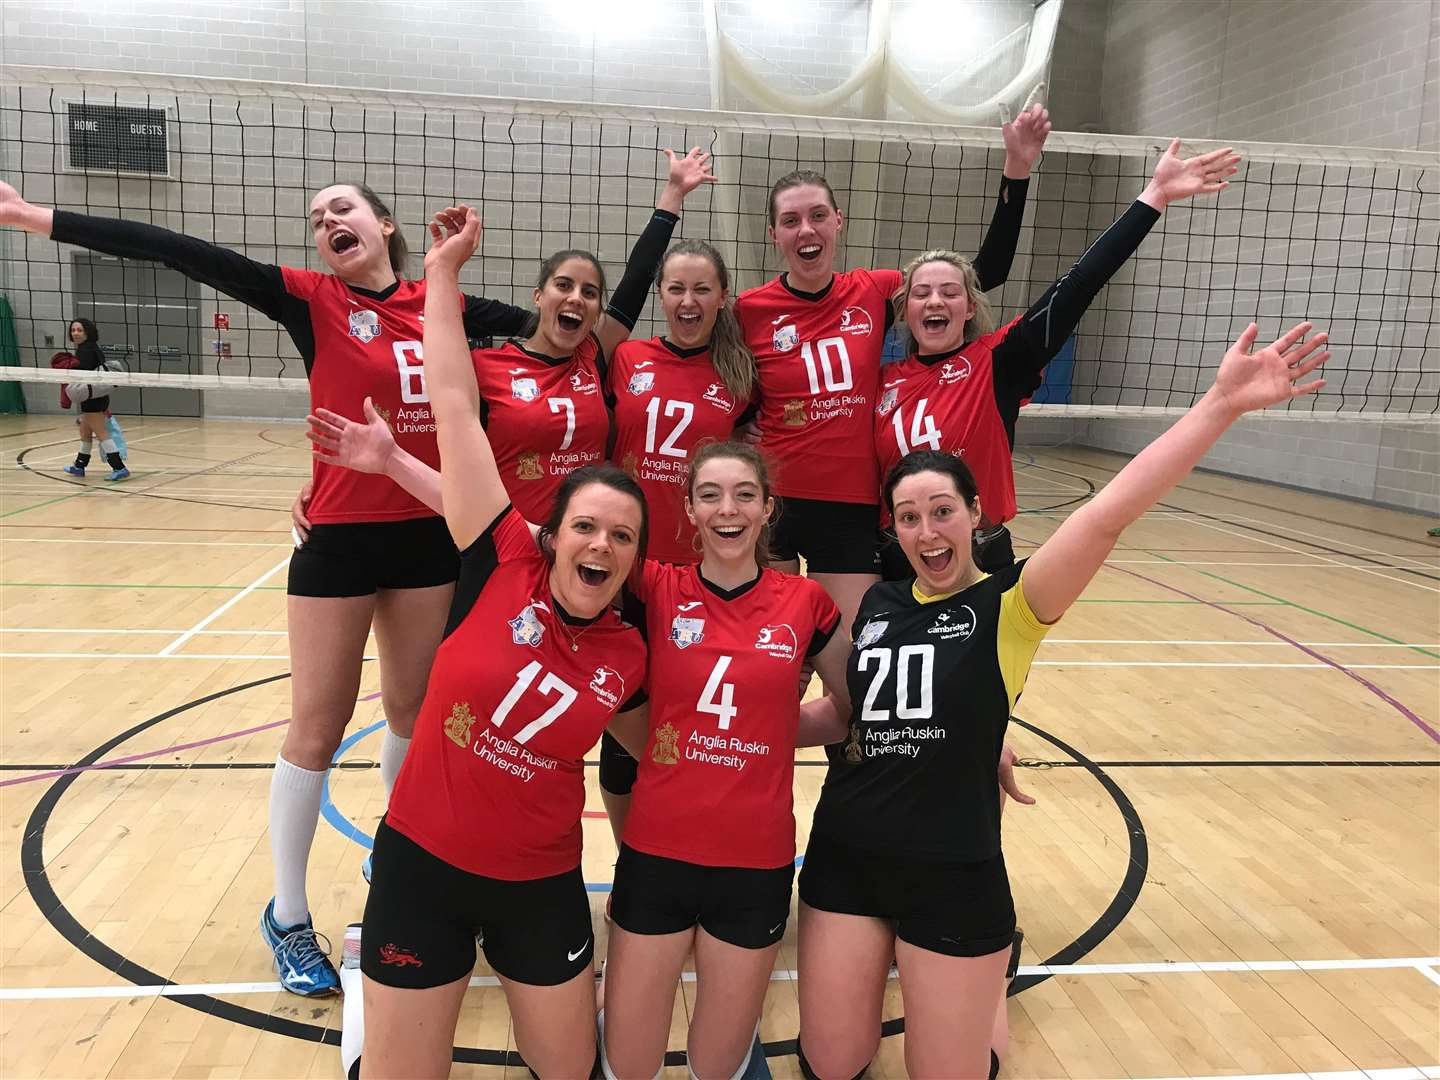 Cambridge Vc Anglia Ruskin University Make It 11 Straight Wins In The National Volleyball League Women S Division One